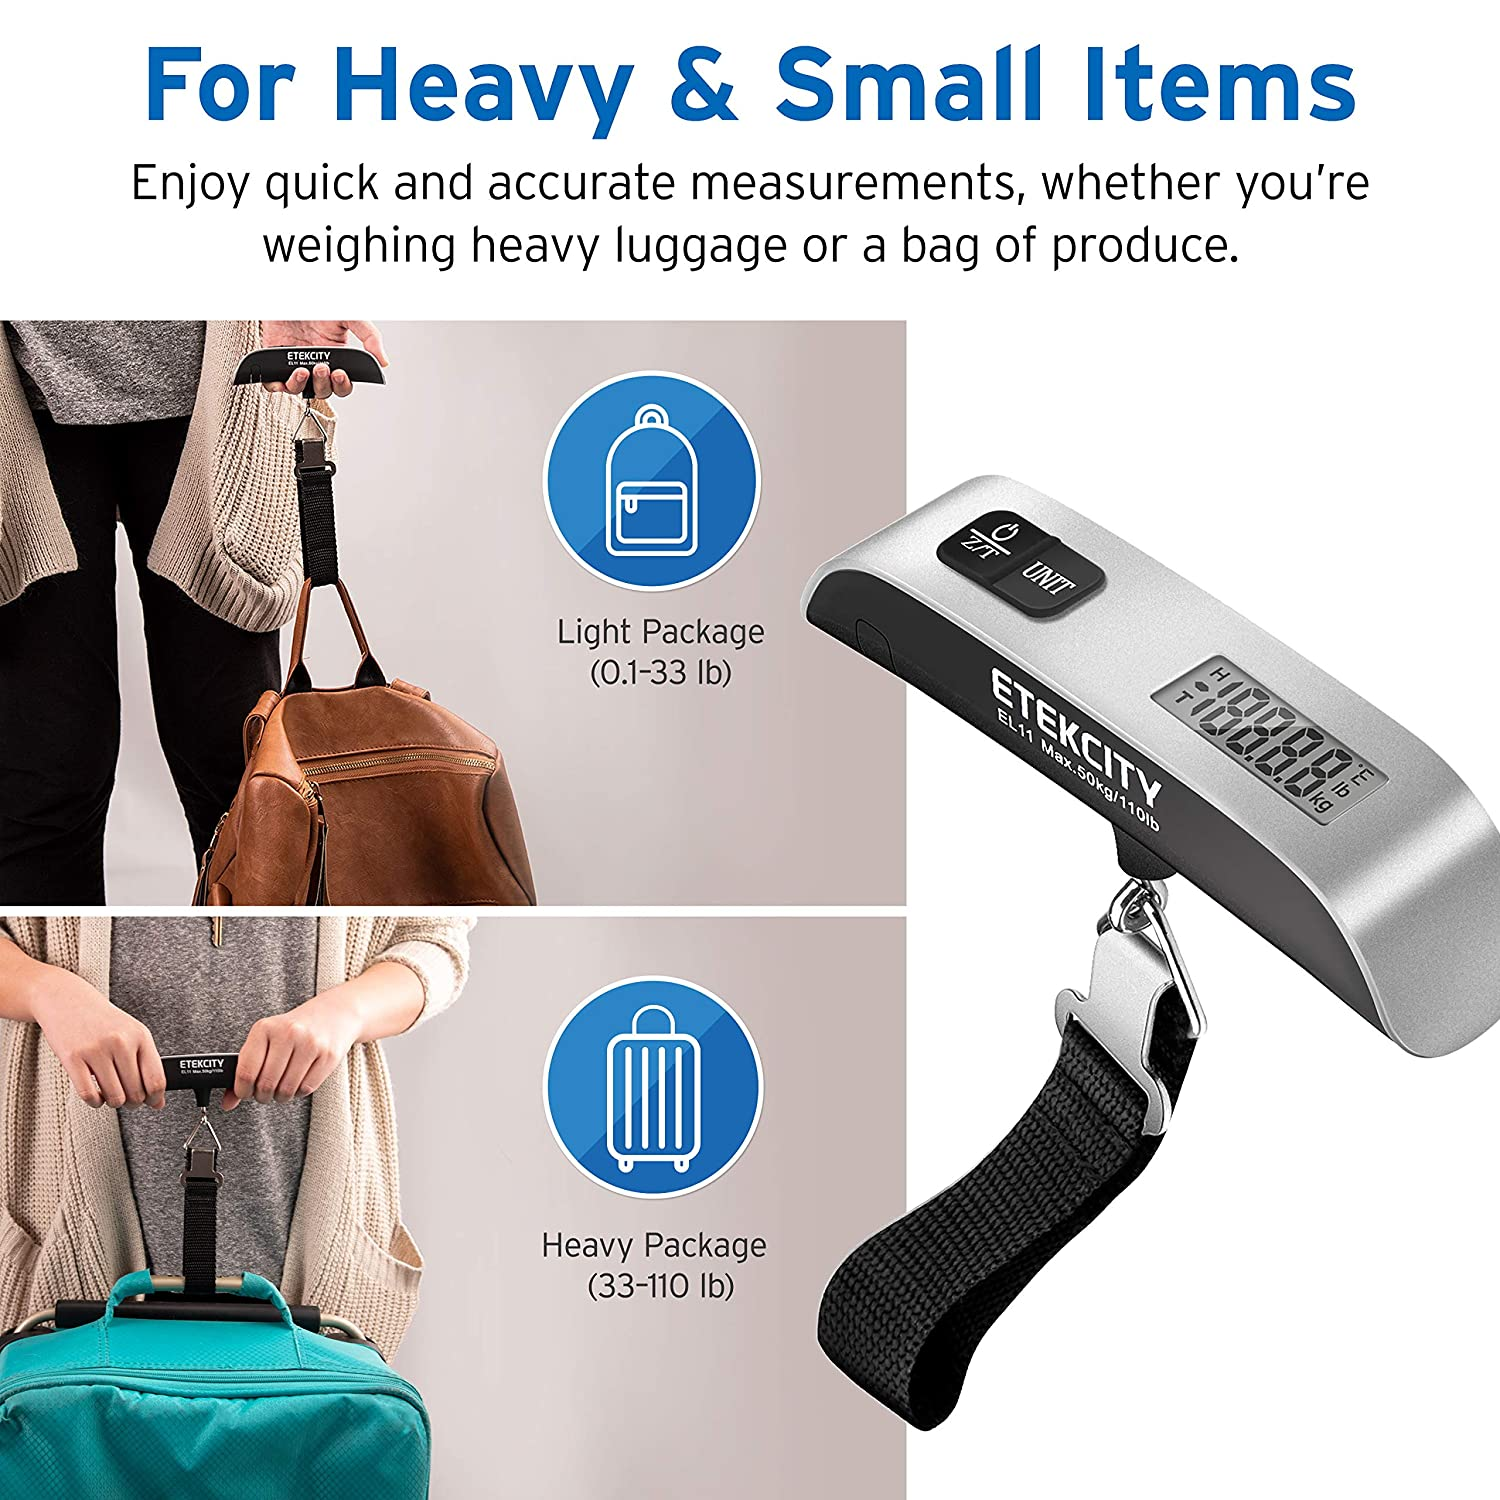 Temperature Sensor Suitcase Scale with Rubber Paint Battery Included Portable Handheld Baggage Scale for Travel Etekcity Digital Hanging Luggage Scale 110 Pounds